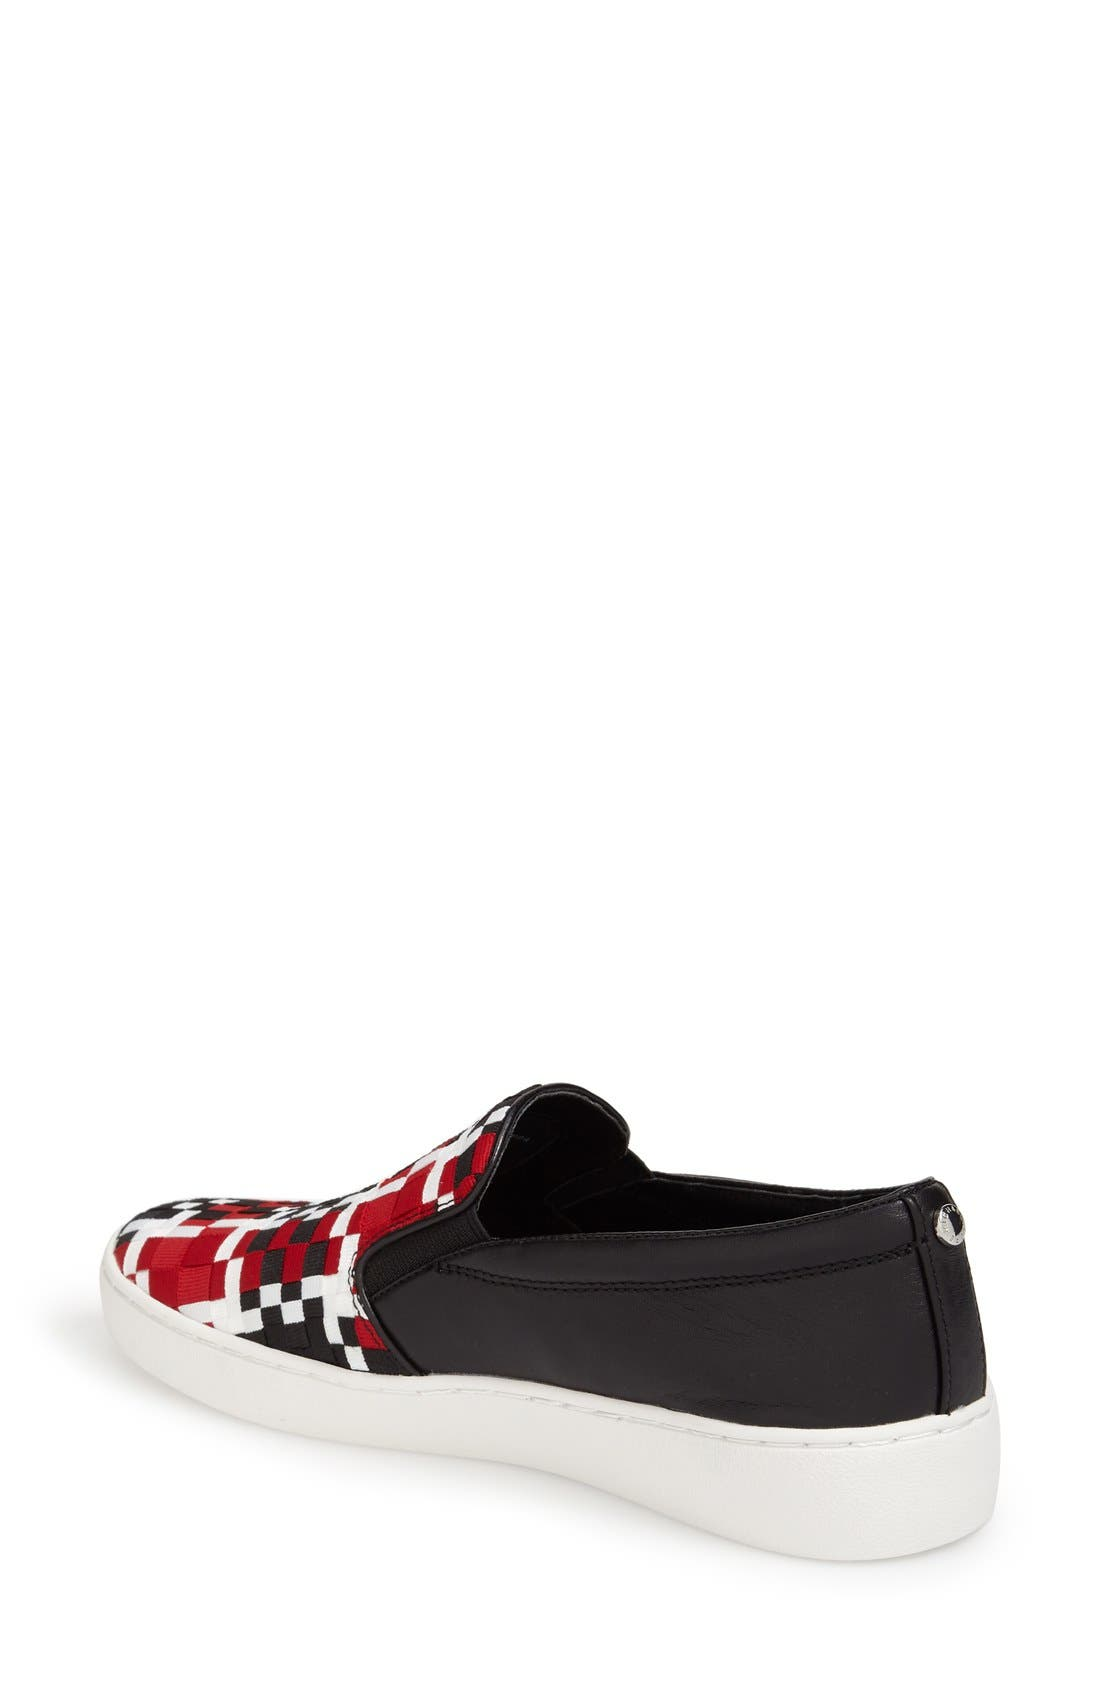 Keaton Slip-On Sneaker,                             Alternate thumbnail 86, color,